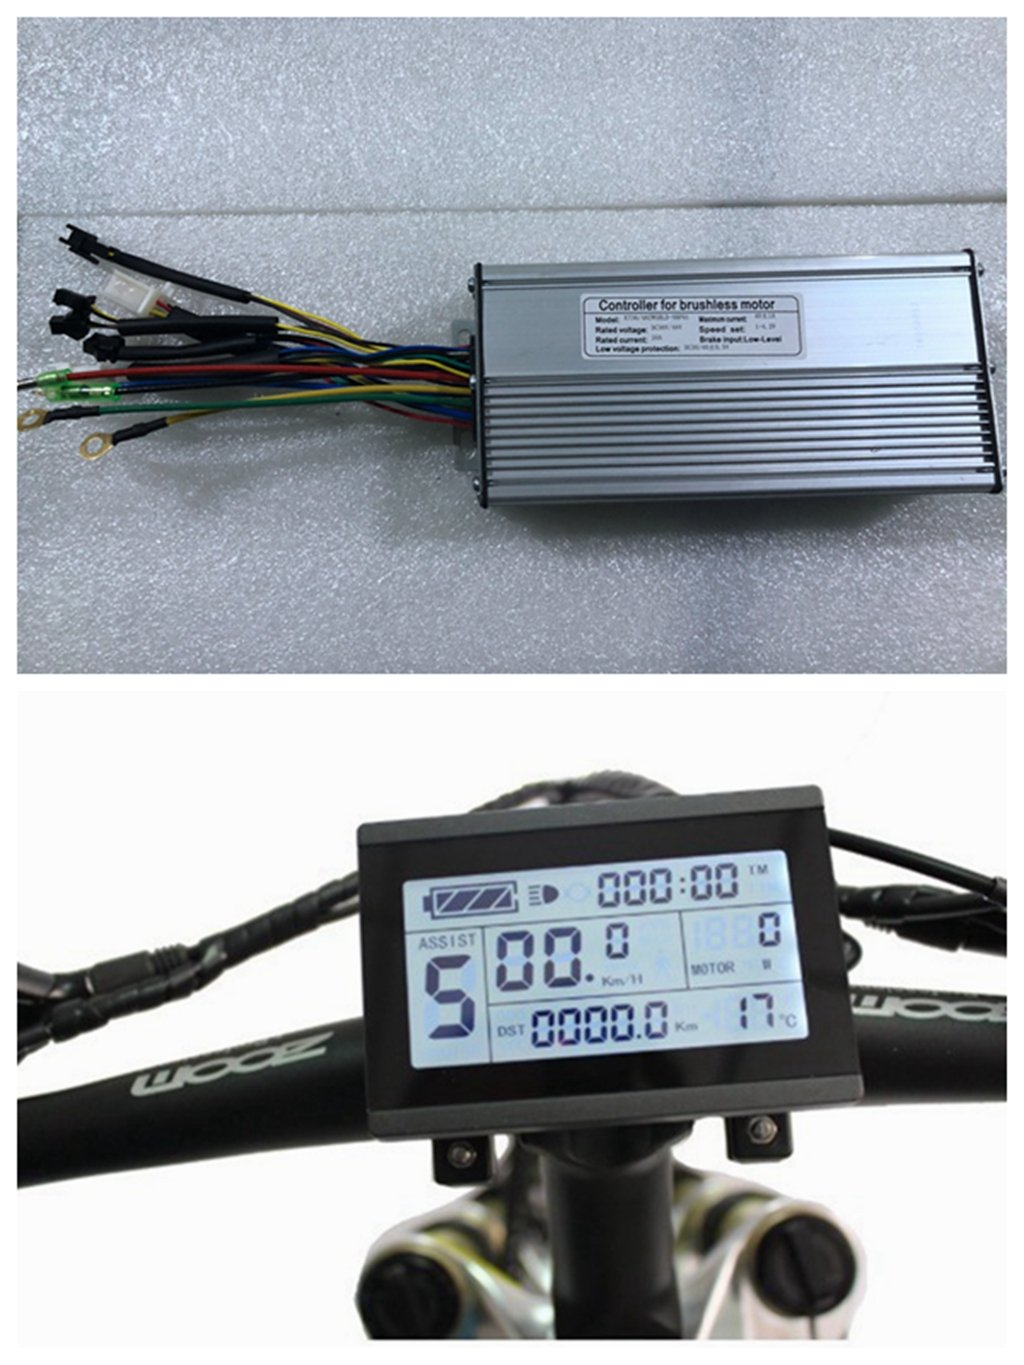 NBPOWER 36V/48V 1500W 40A Brushless DC Motor Controller Ebike Controller +KT-LCD3 Display One Set,used for 1500W-2000W…